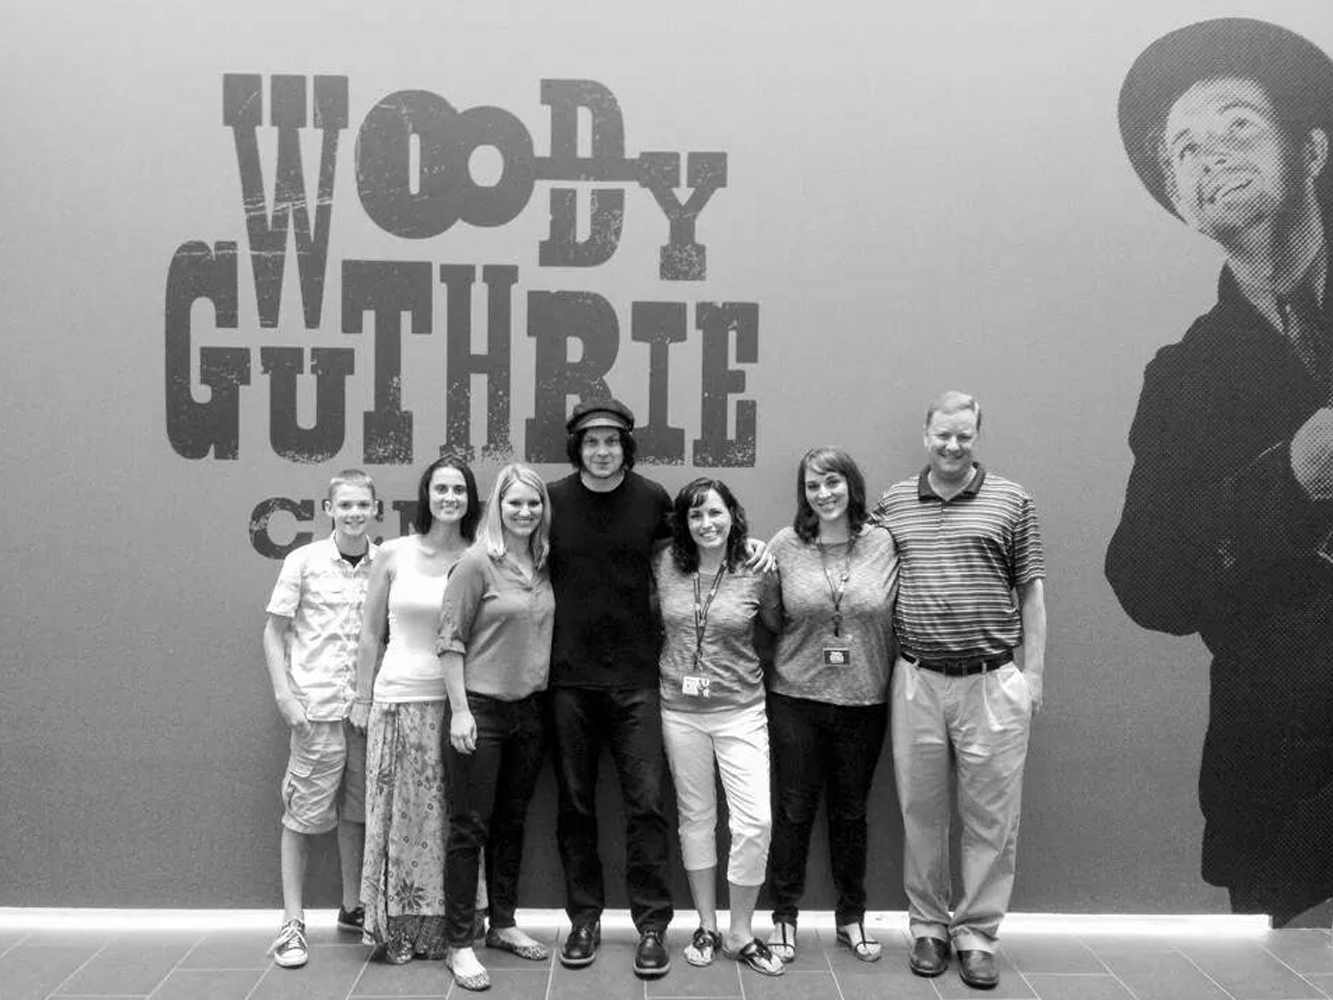 Photo of Jack White at Woody Guthrie Center